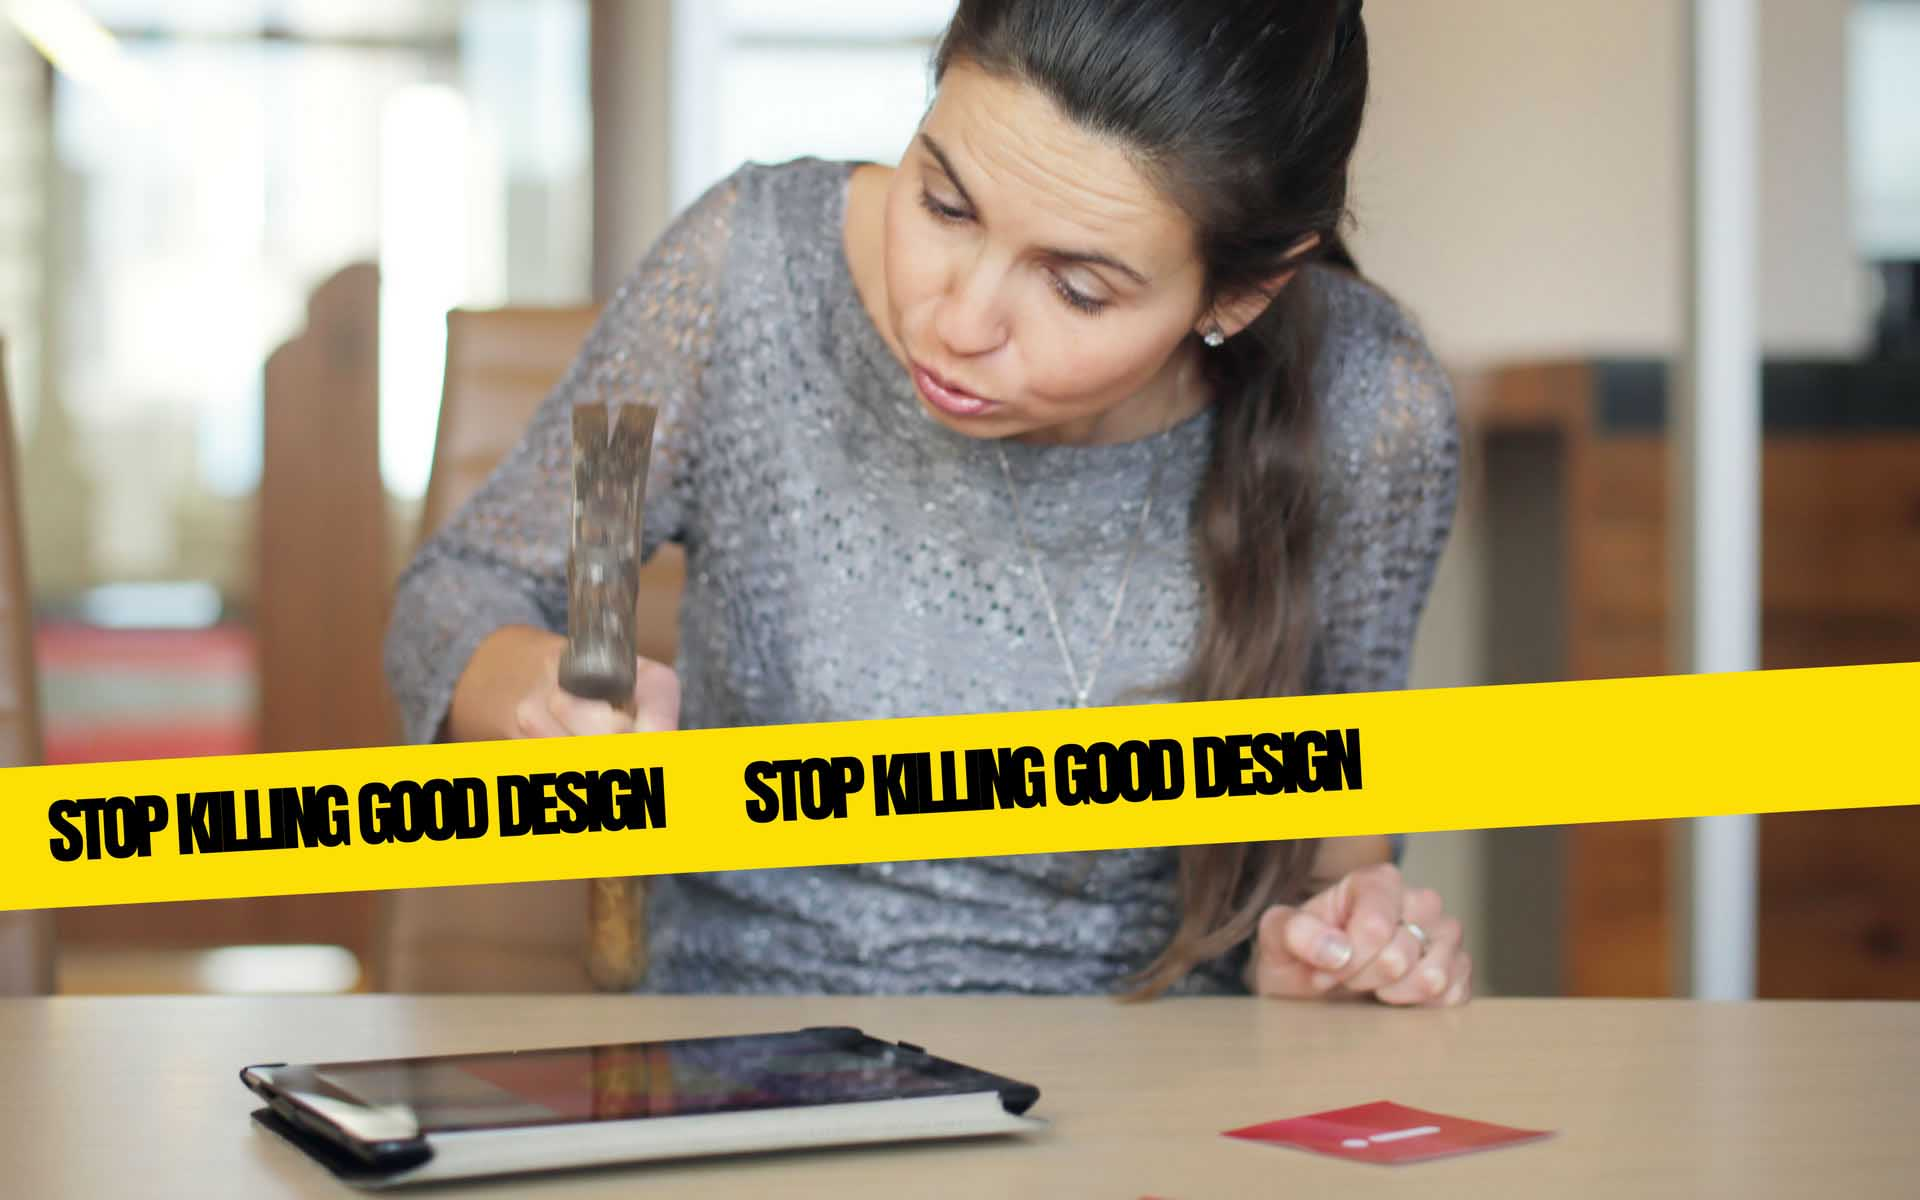 How to Keep Project Stakeholders from Ruining Good Design